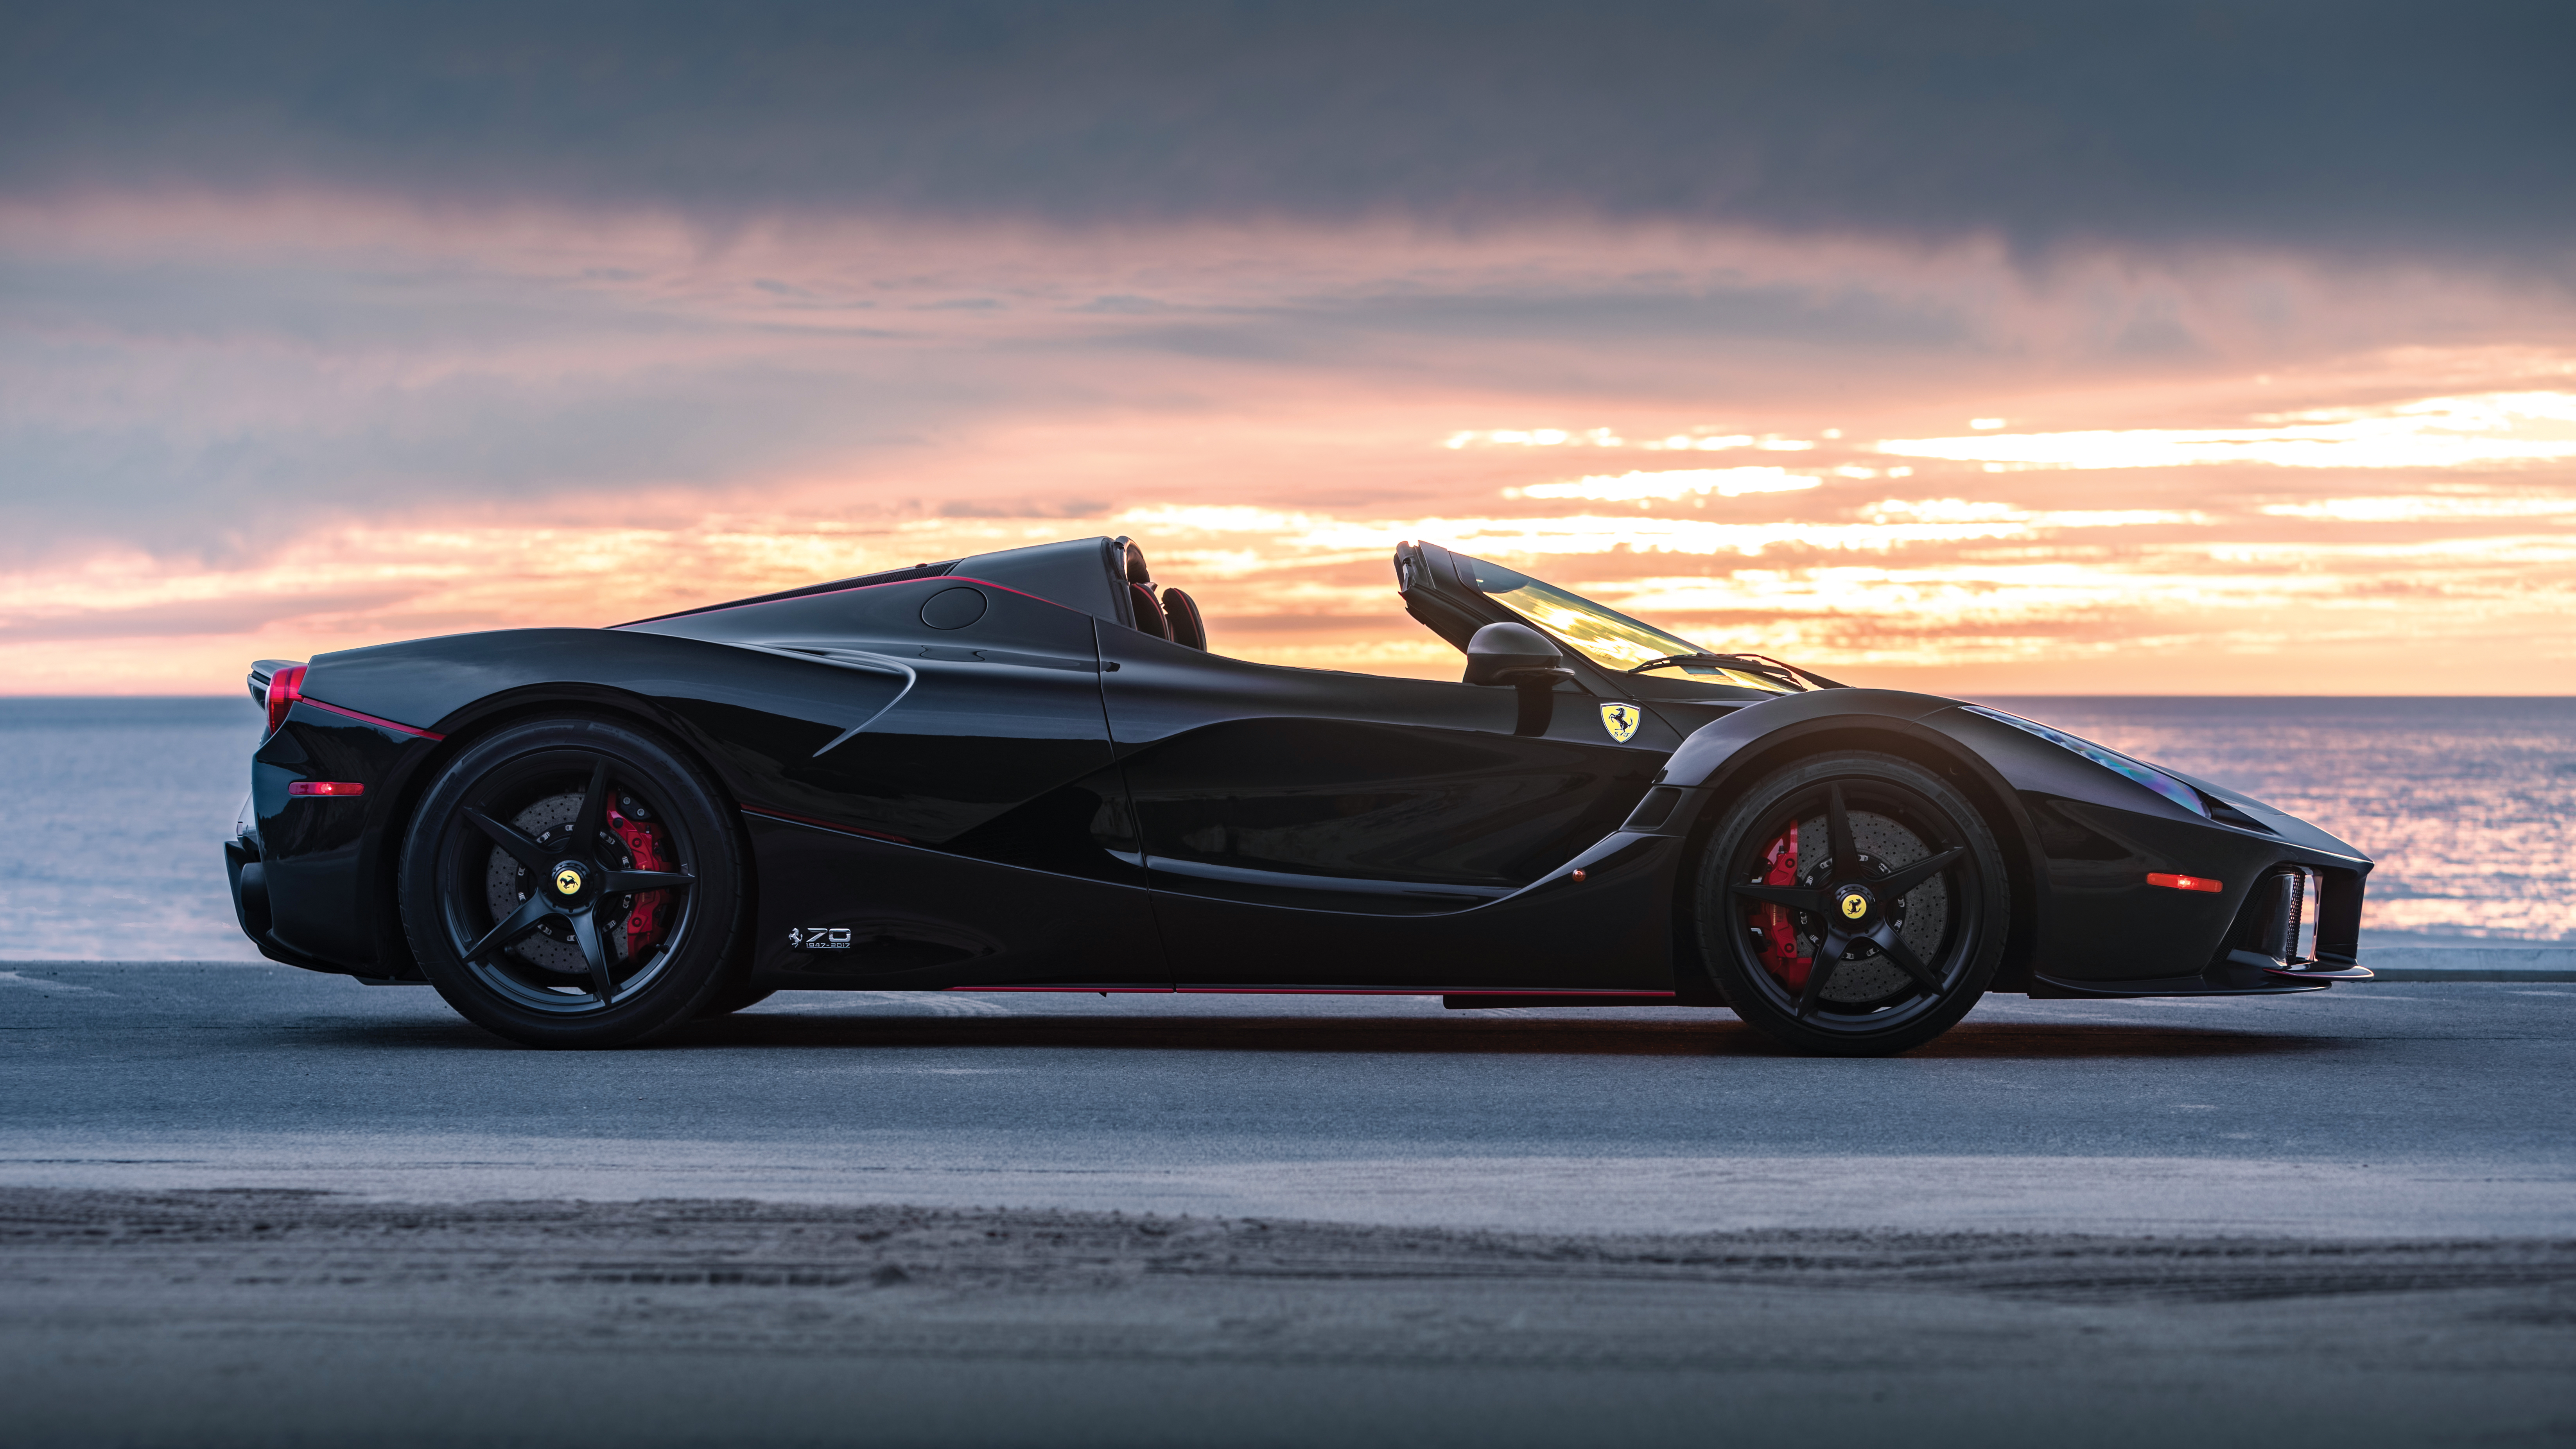 Black Ferrari Hd Cars 4k Wallpapers Images Backgrounds Photos And Pictures